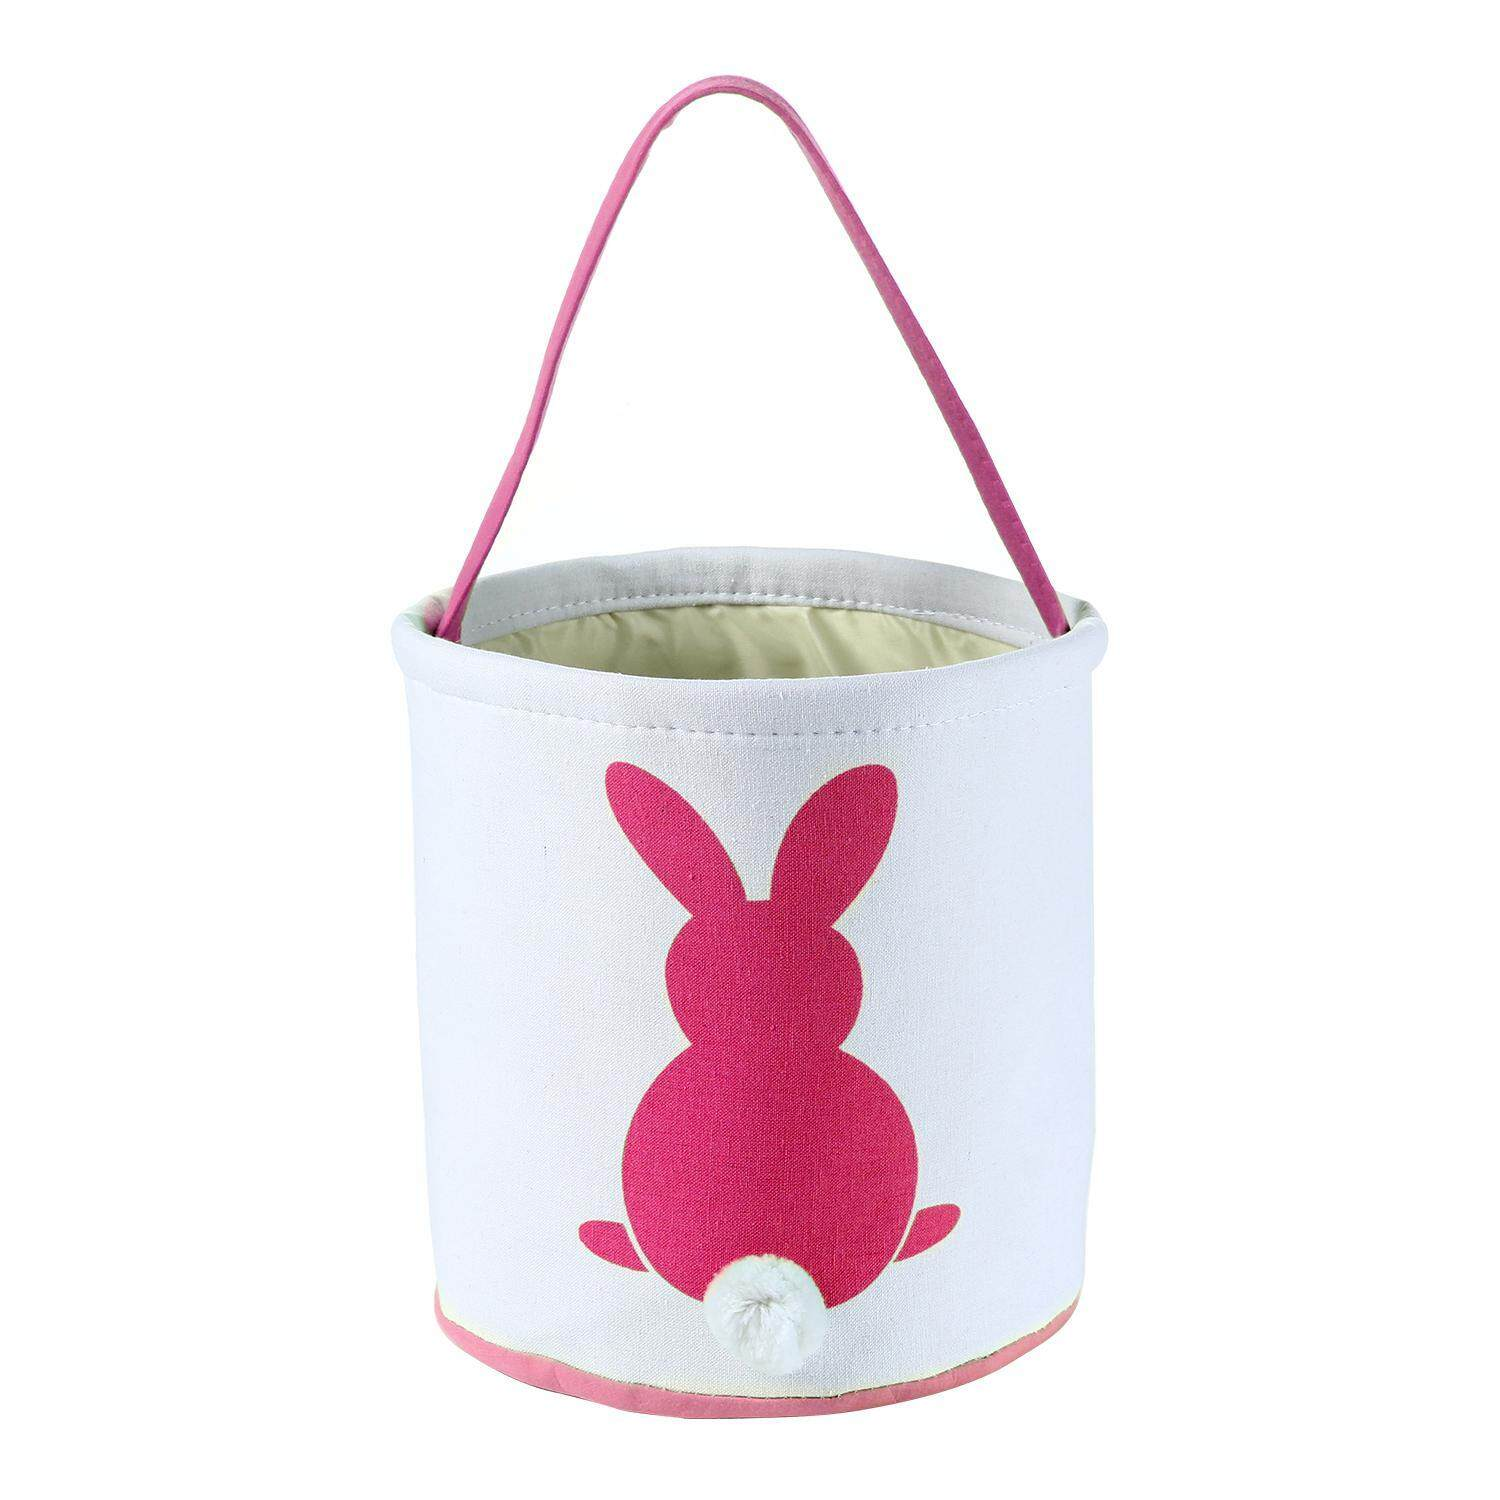 niceEshop Basket For Kids Easter Bunny Bag Toy Storage Bag Organiser - intl